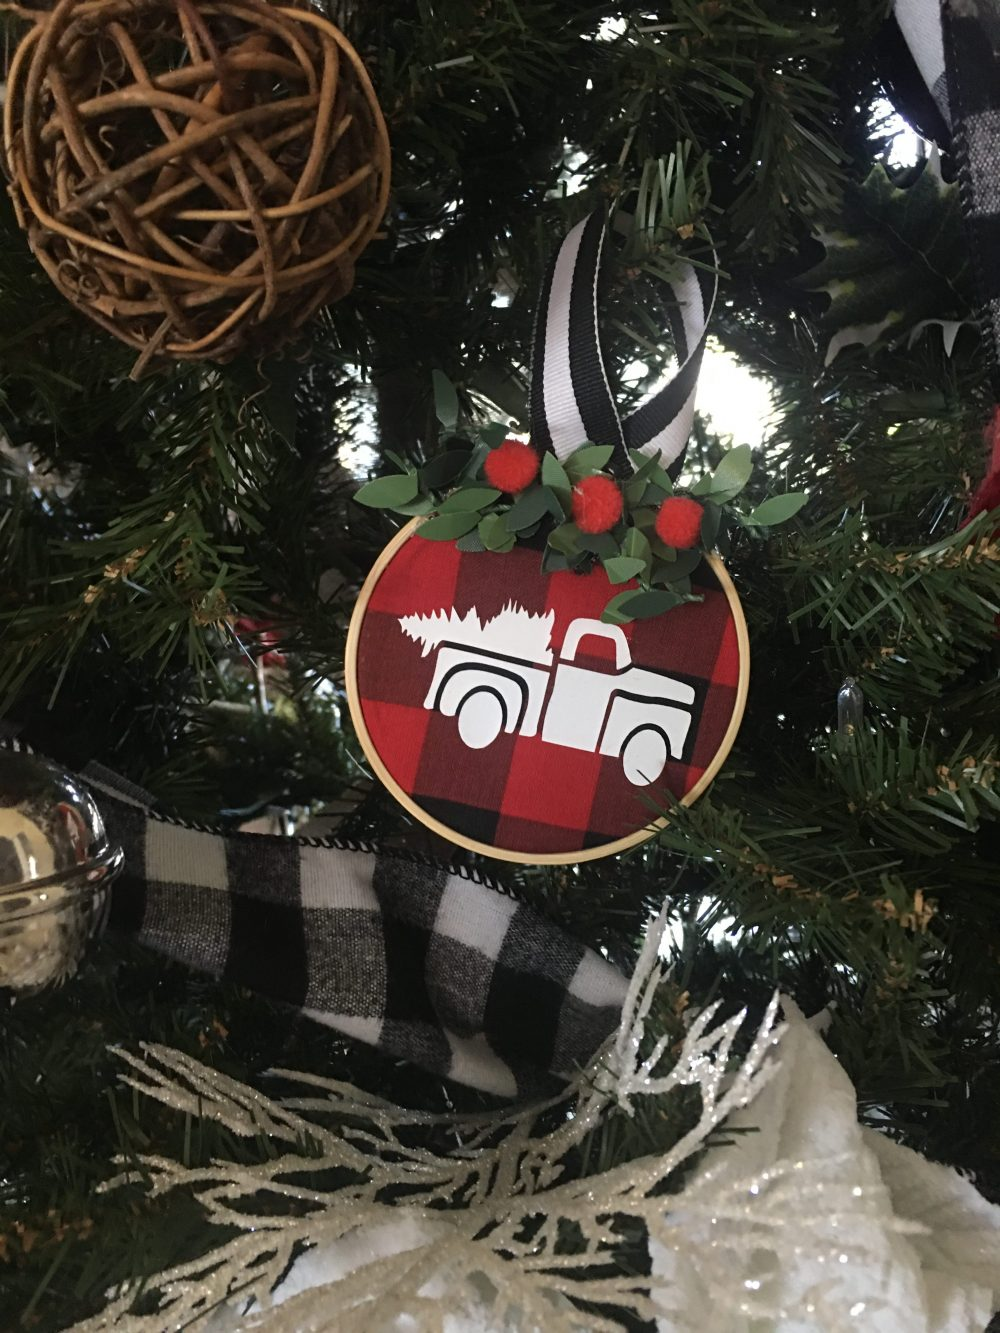 Make your own DIY Mini Embroidery Hoop ornaments using this simple and easy tutorial. Making these are so much fun and take less than 5 minutes to make. #minihoopornaments #embroideryhoopornaments #diychristmasornaments